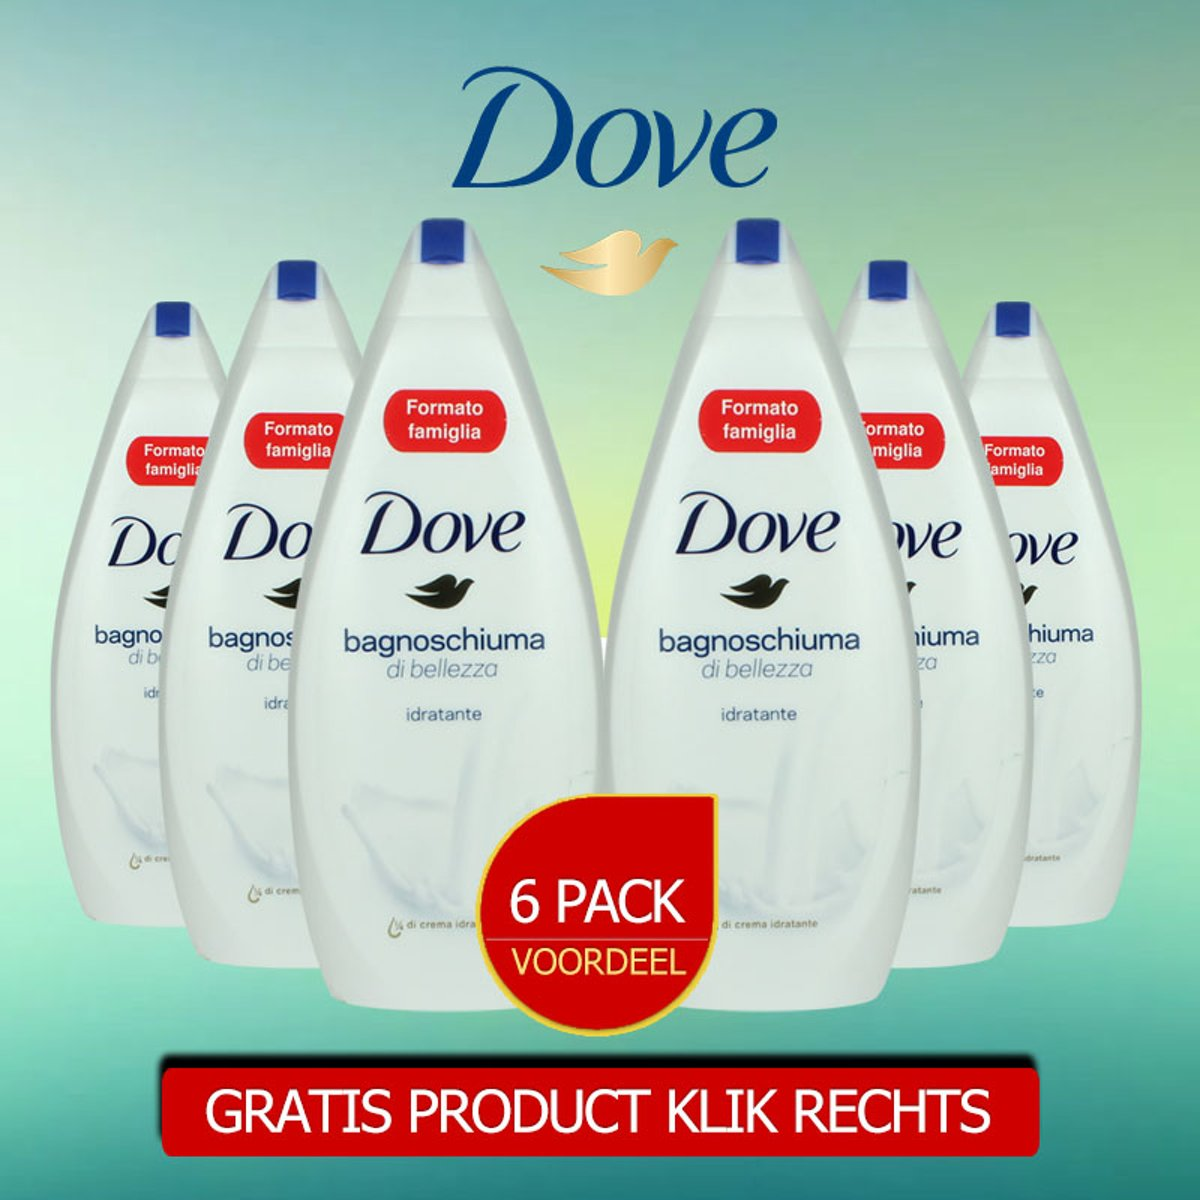 Dove Go Fresh Original Douchegel 700ml - 6 Pack Voordeelverpakking - Gratis Oramint Oral Care Kit 6 Delig